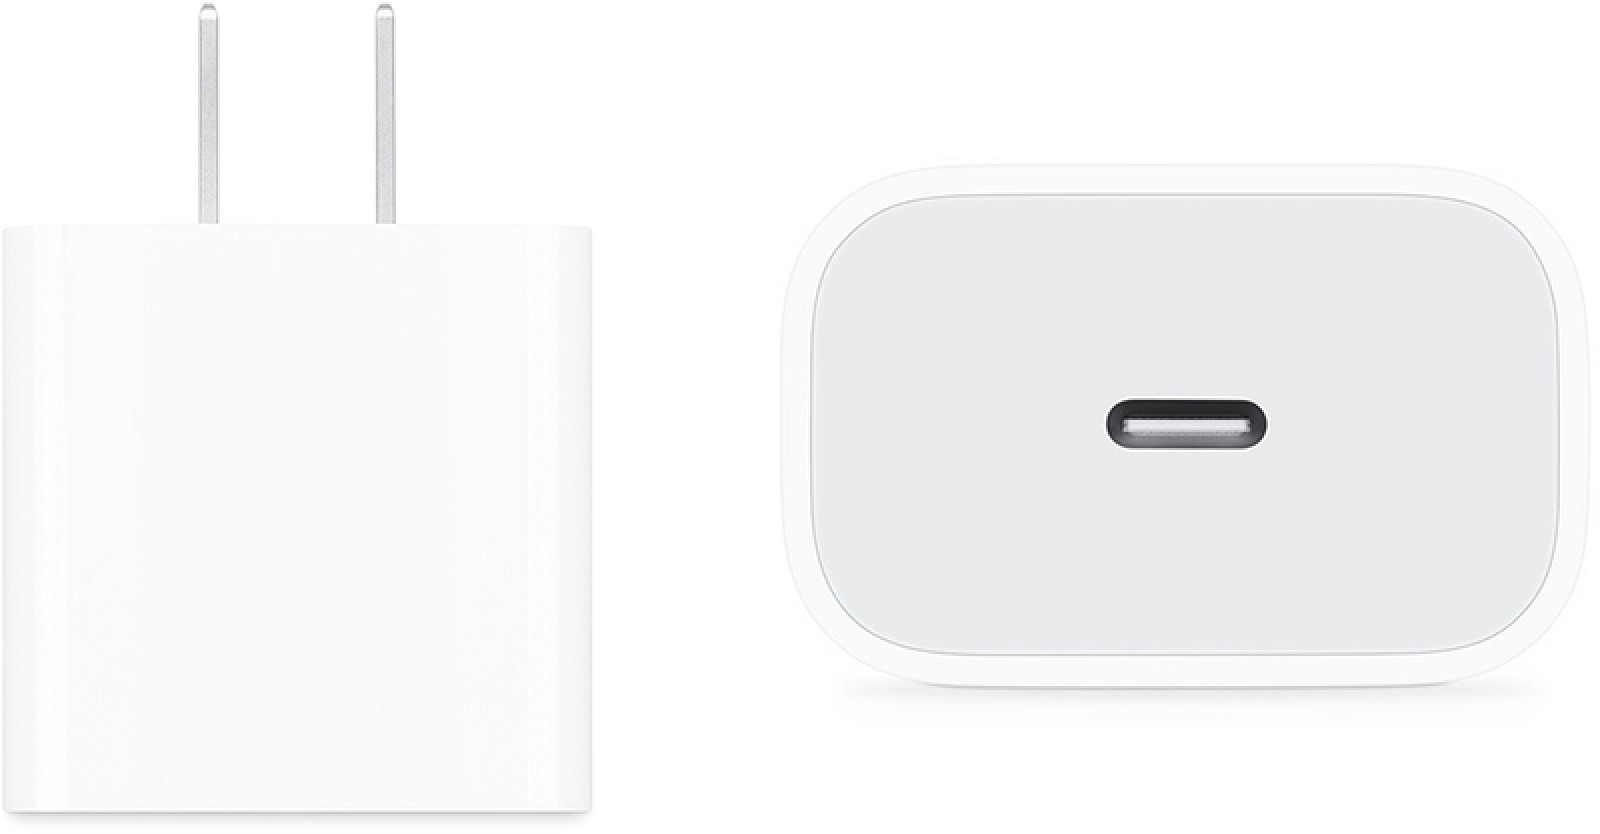 2019 iPhones 'Likely' to Have Faster 18W Charger and Lightning to USB-C Cable in Box